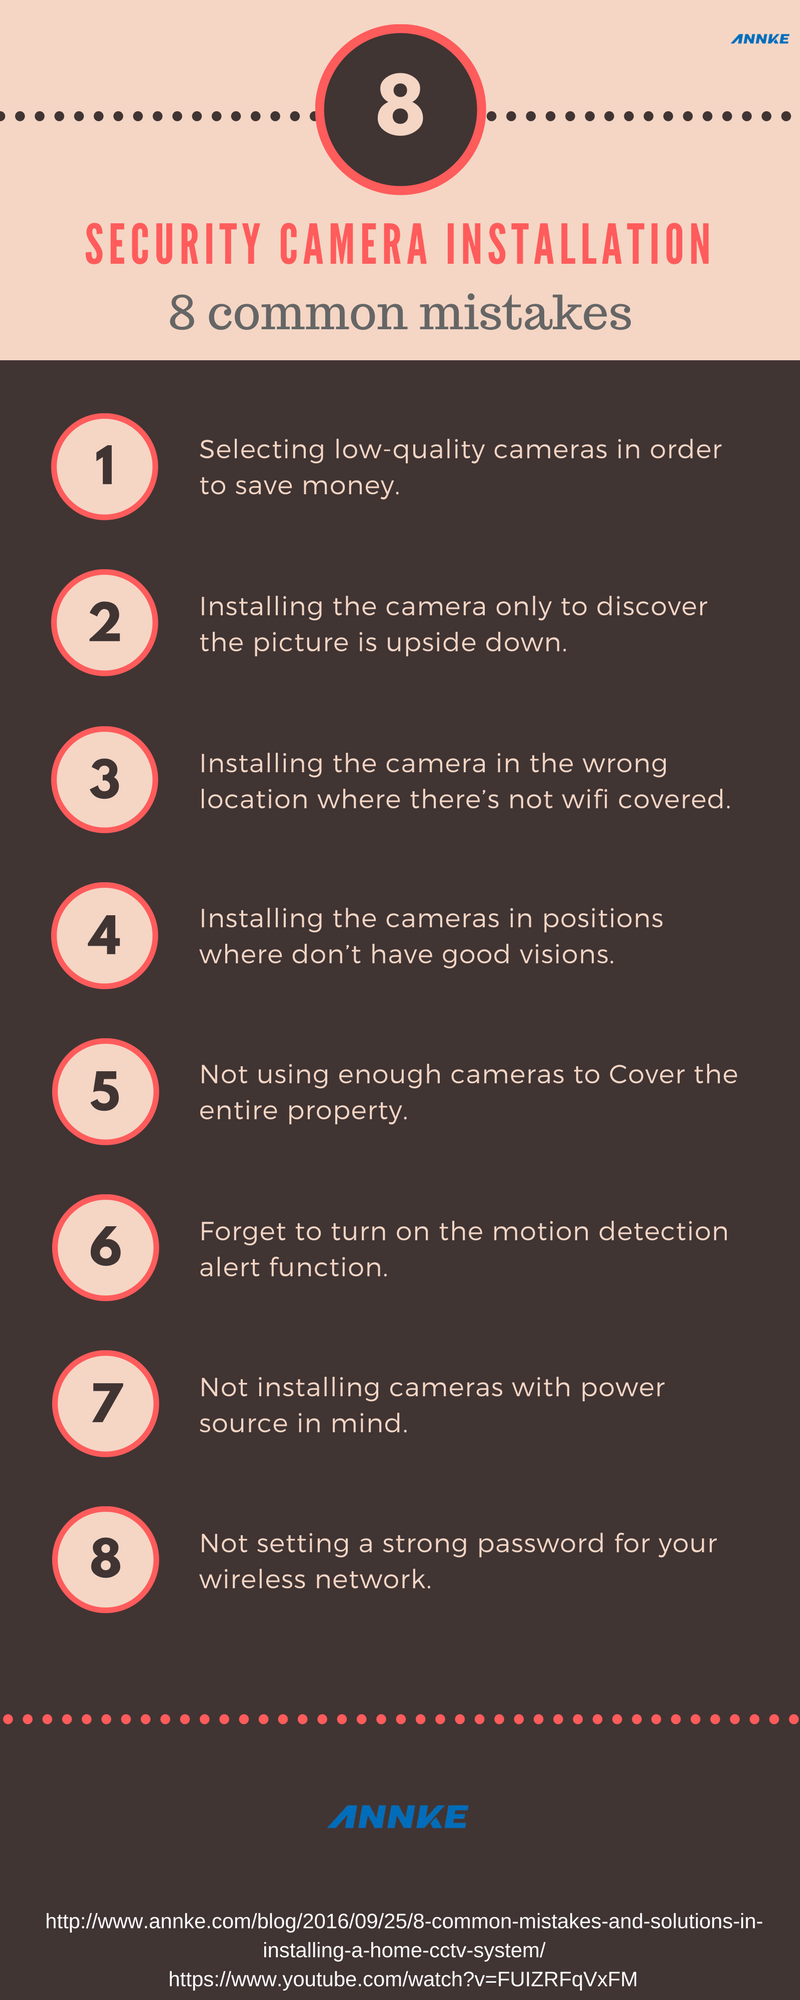 security camera installation guide infographic by annke